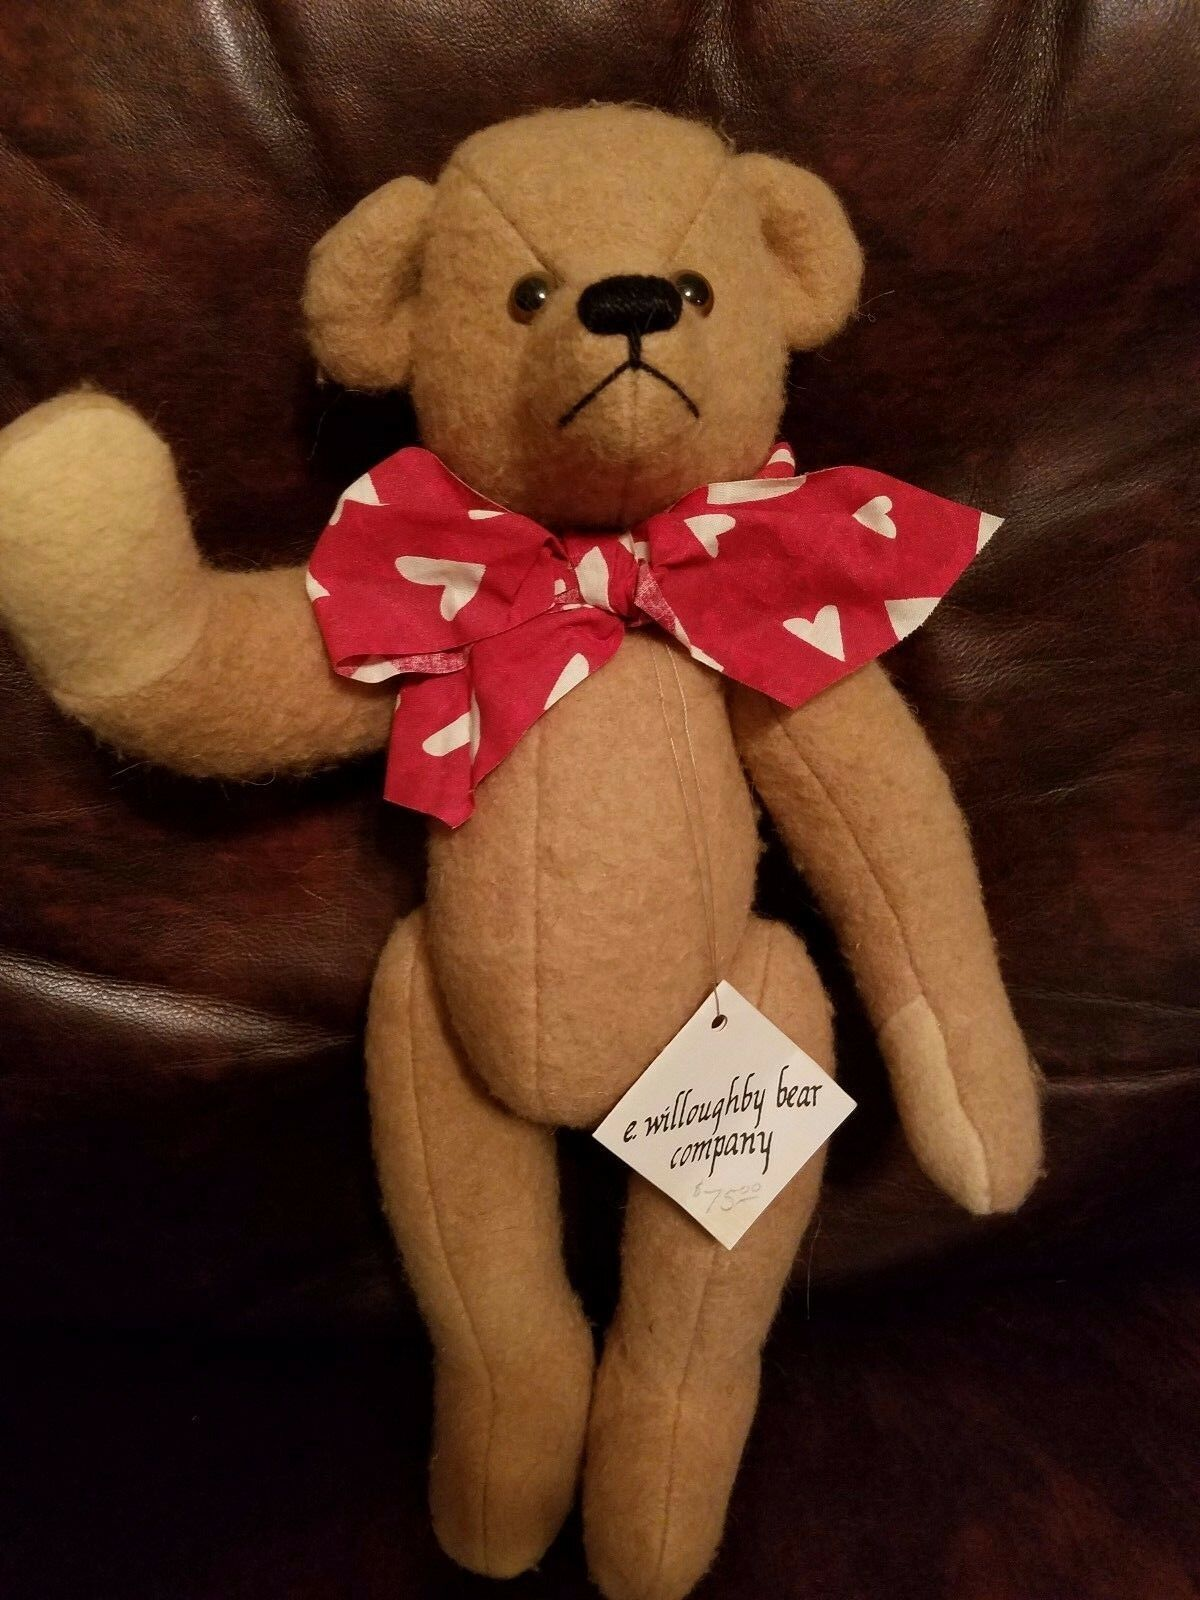 16   name Blanket Bear by Anne Cranshaw e. willoughby bear company